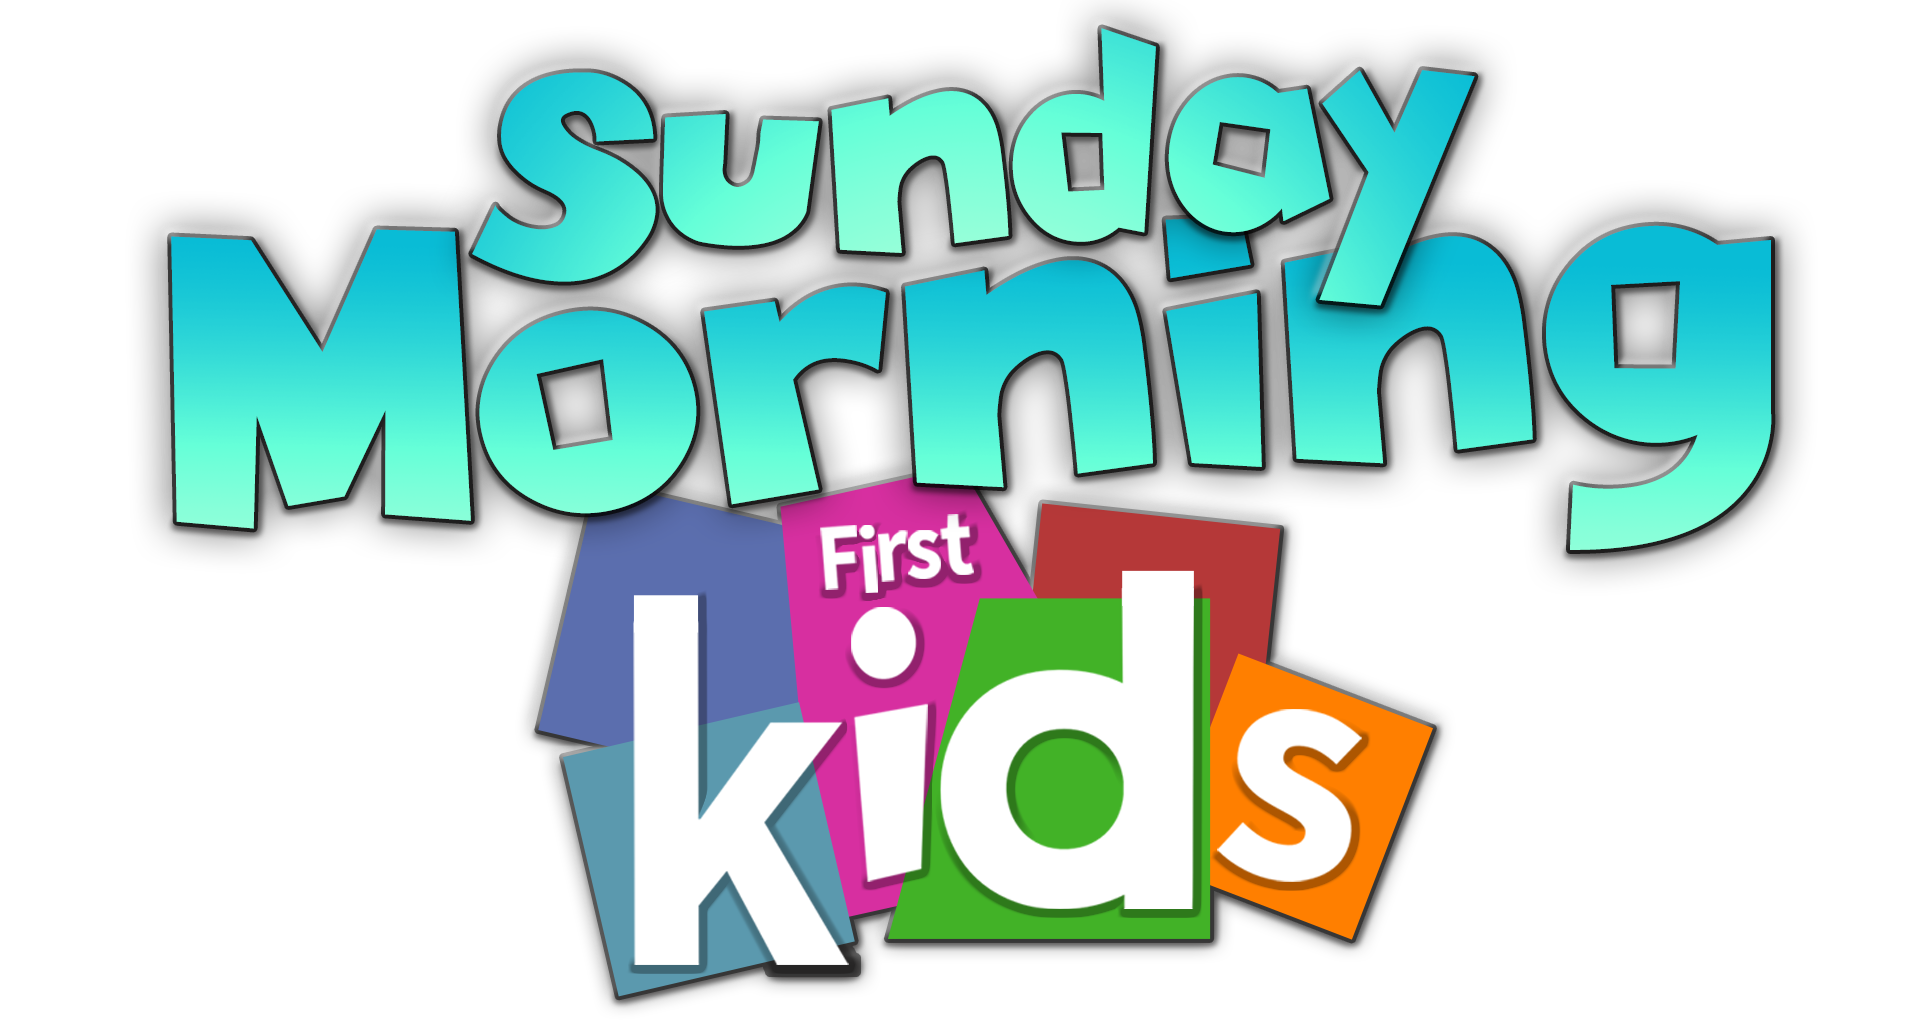 First Kids Sunday Morning First Kids v2.png